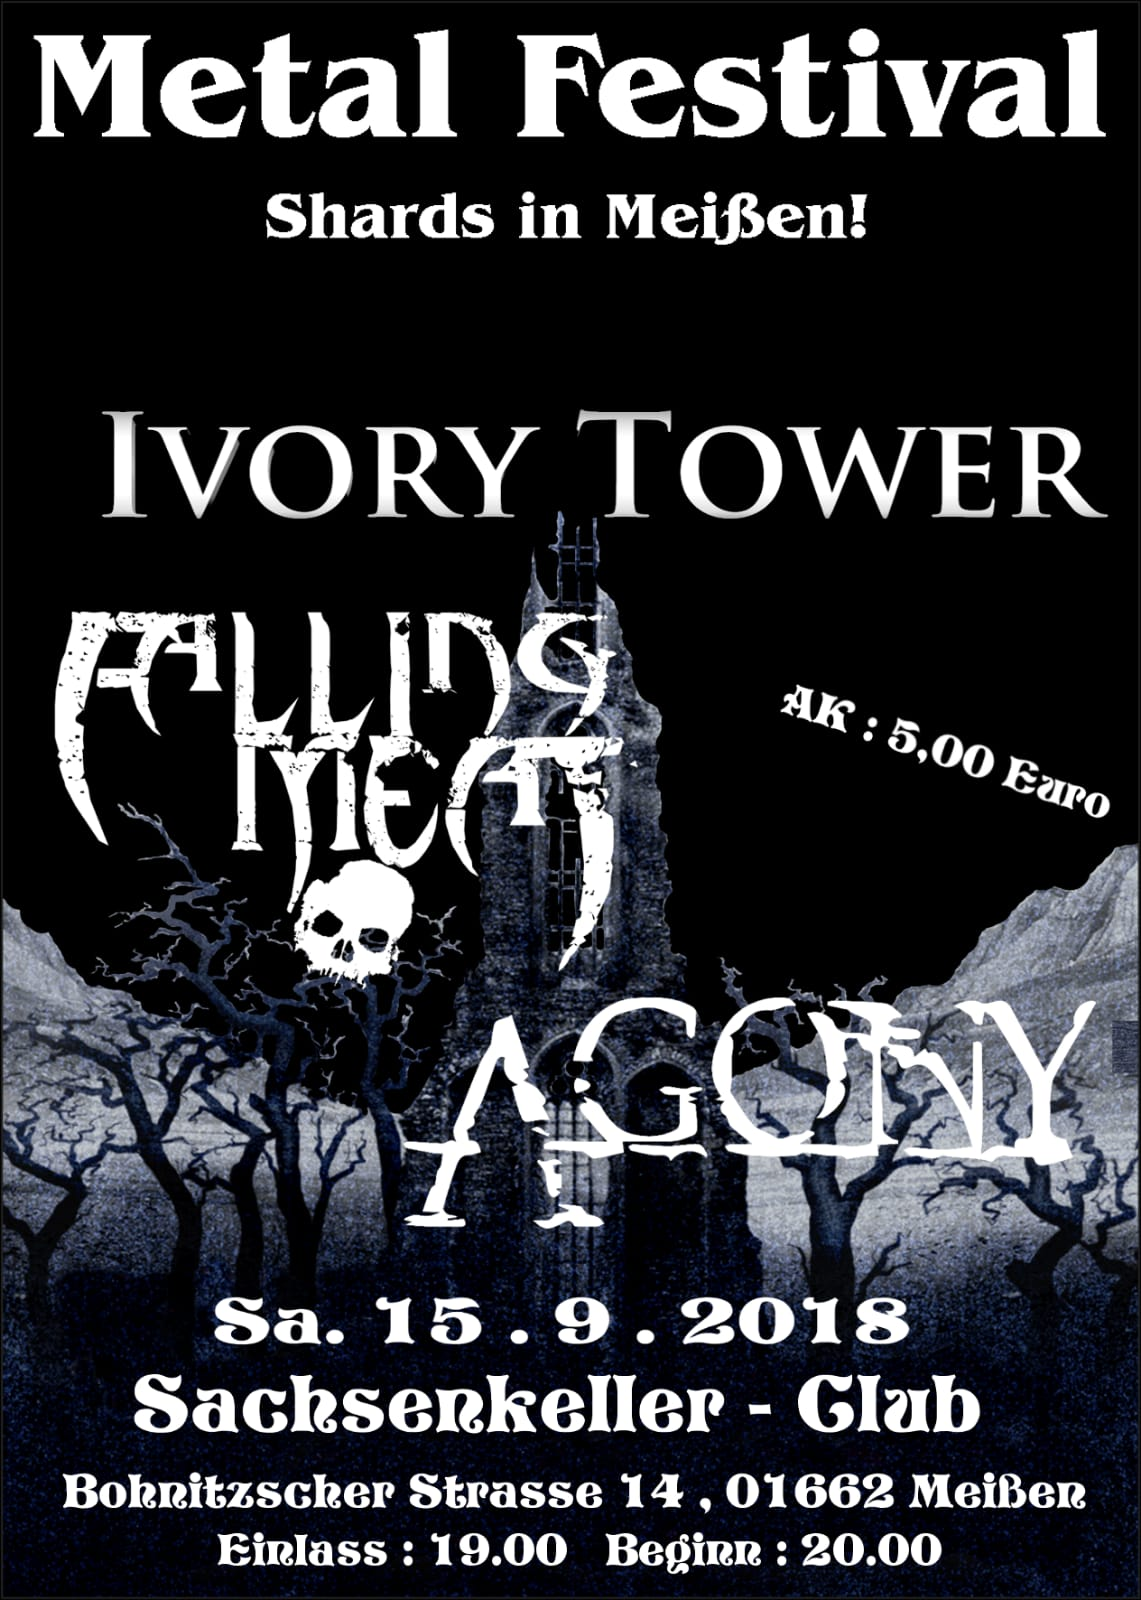 Shards In Meißen!!! Metal Festival!